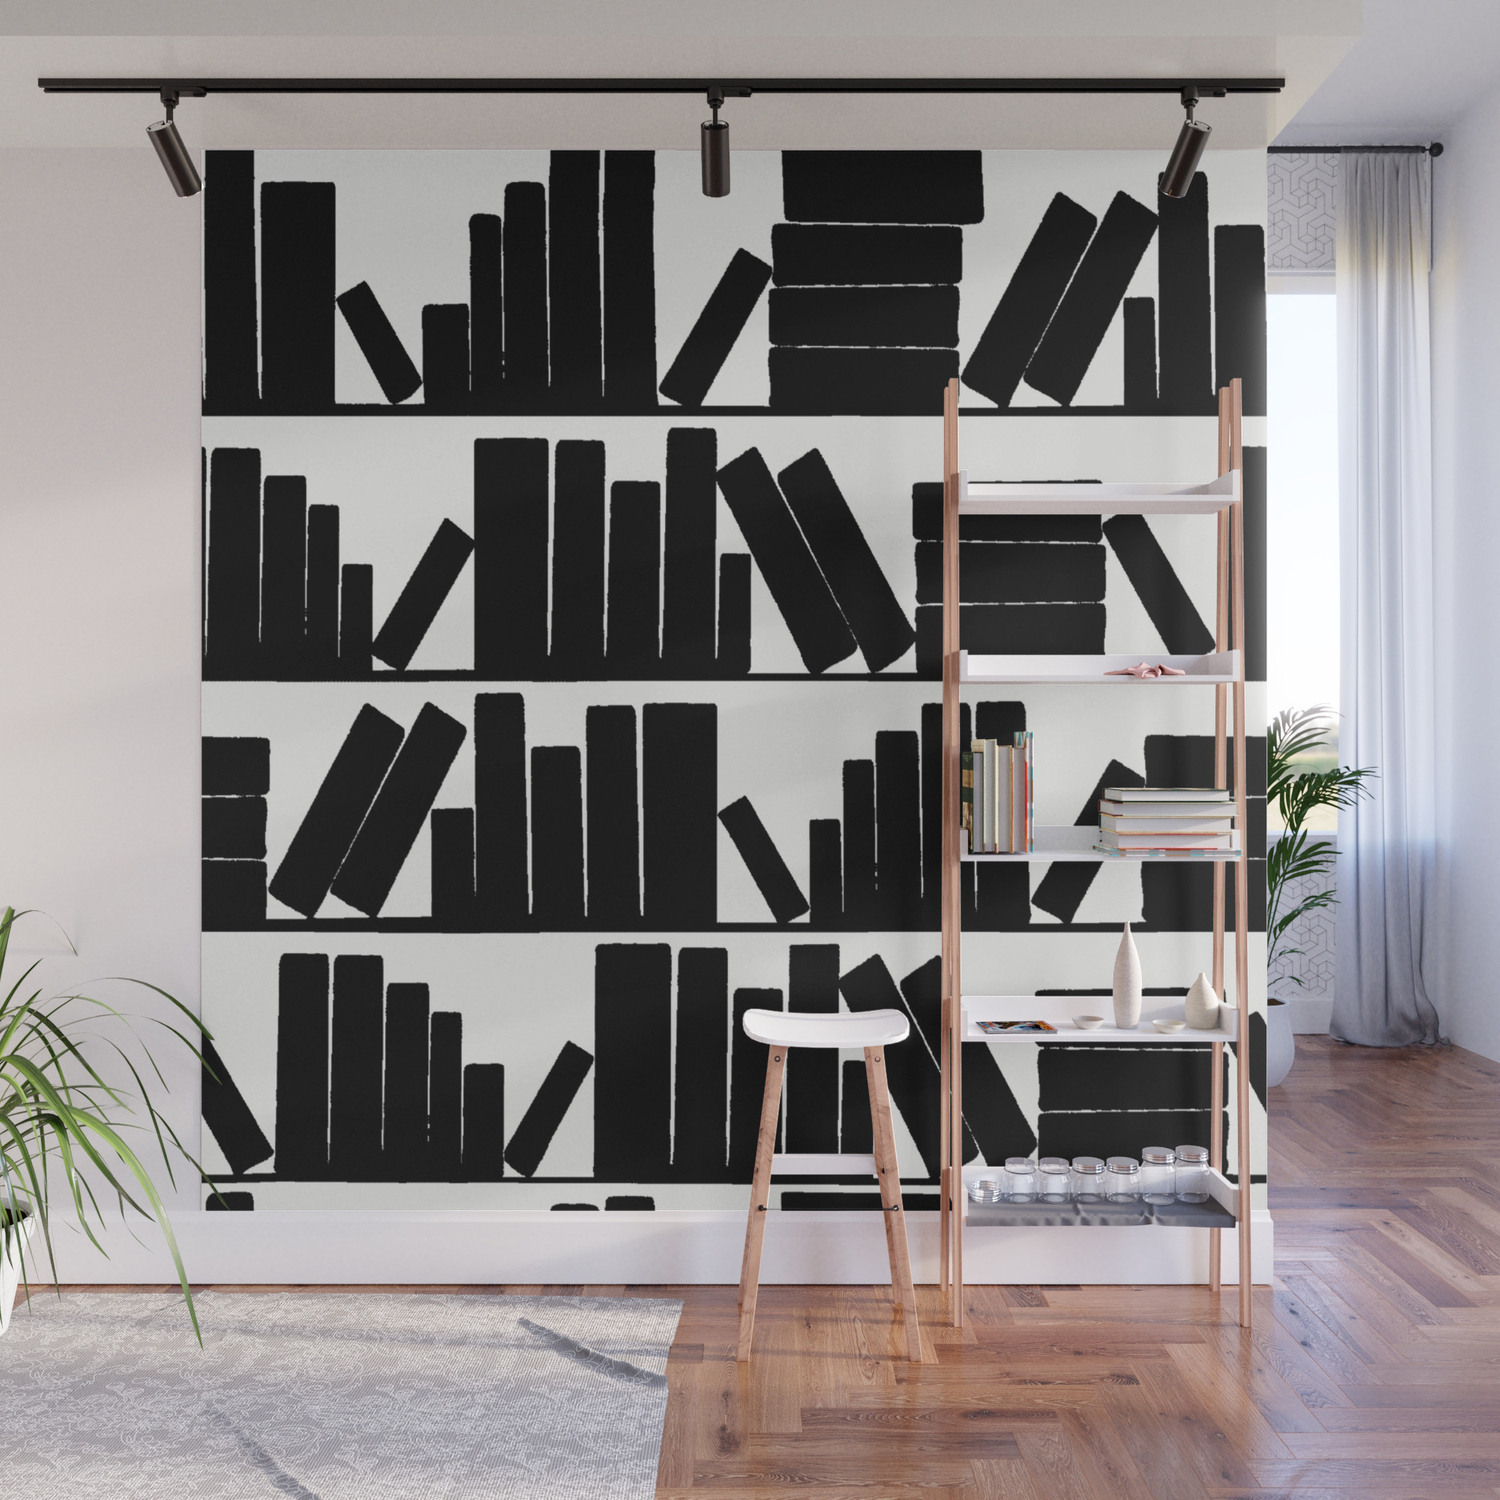 Library Book Shelves Black And White Wall Mural